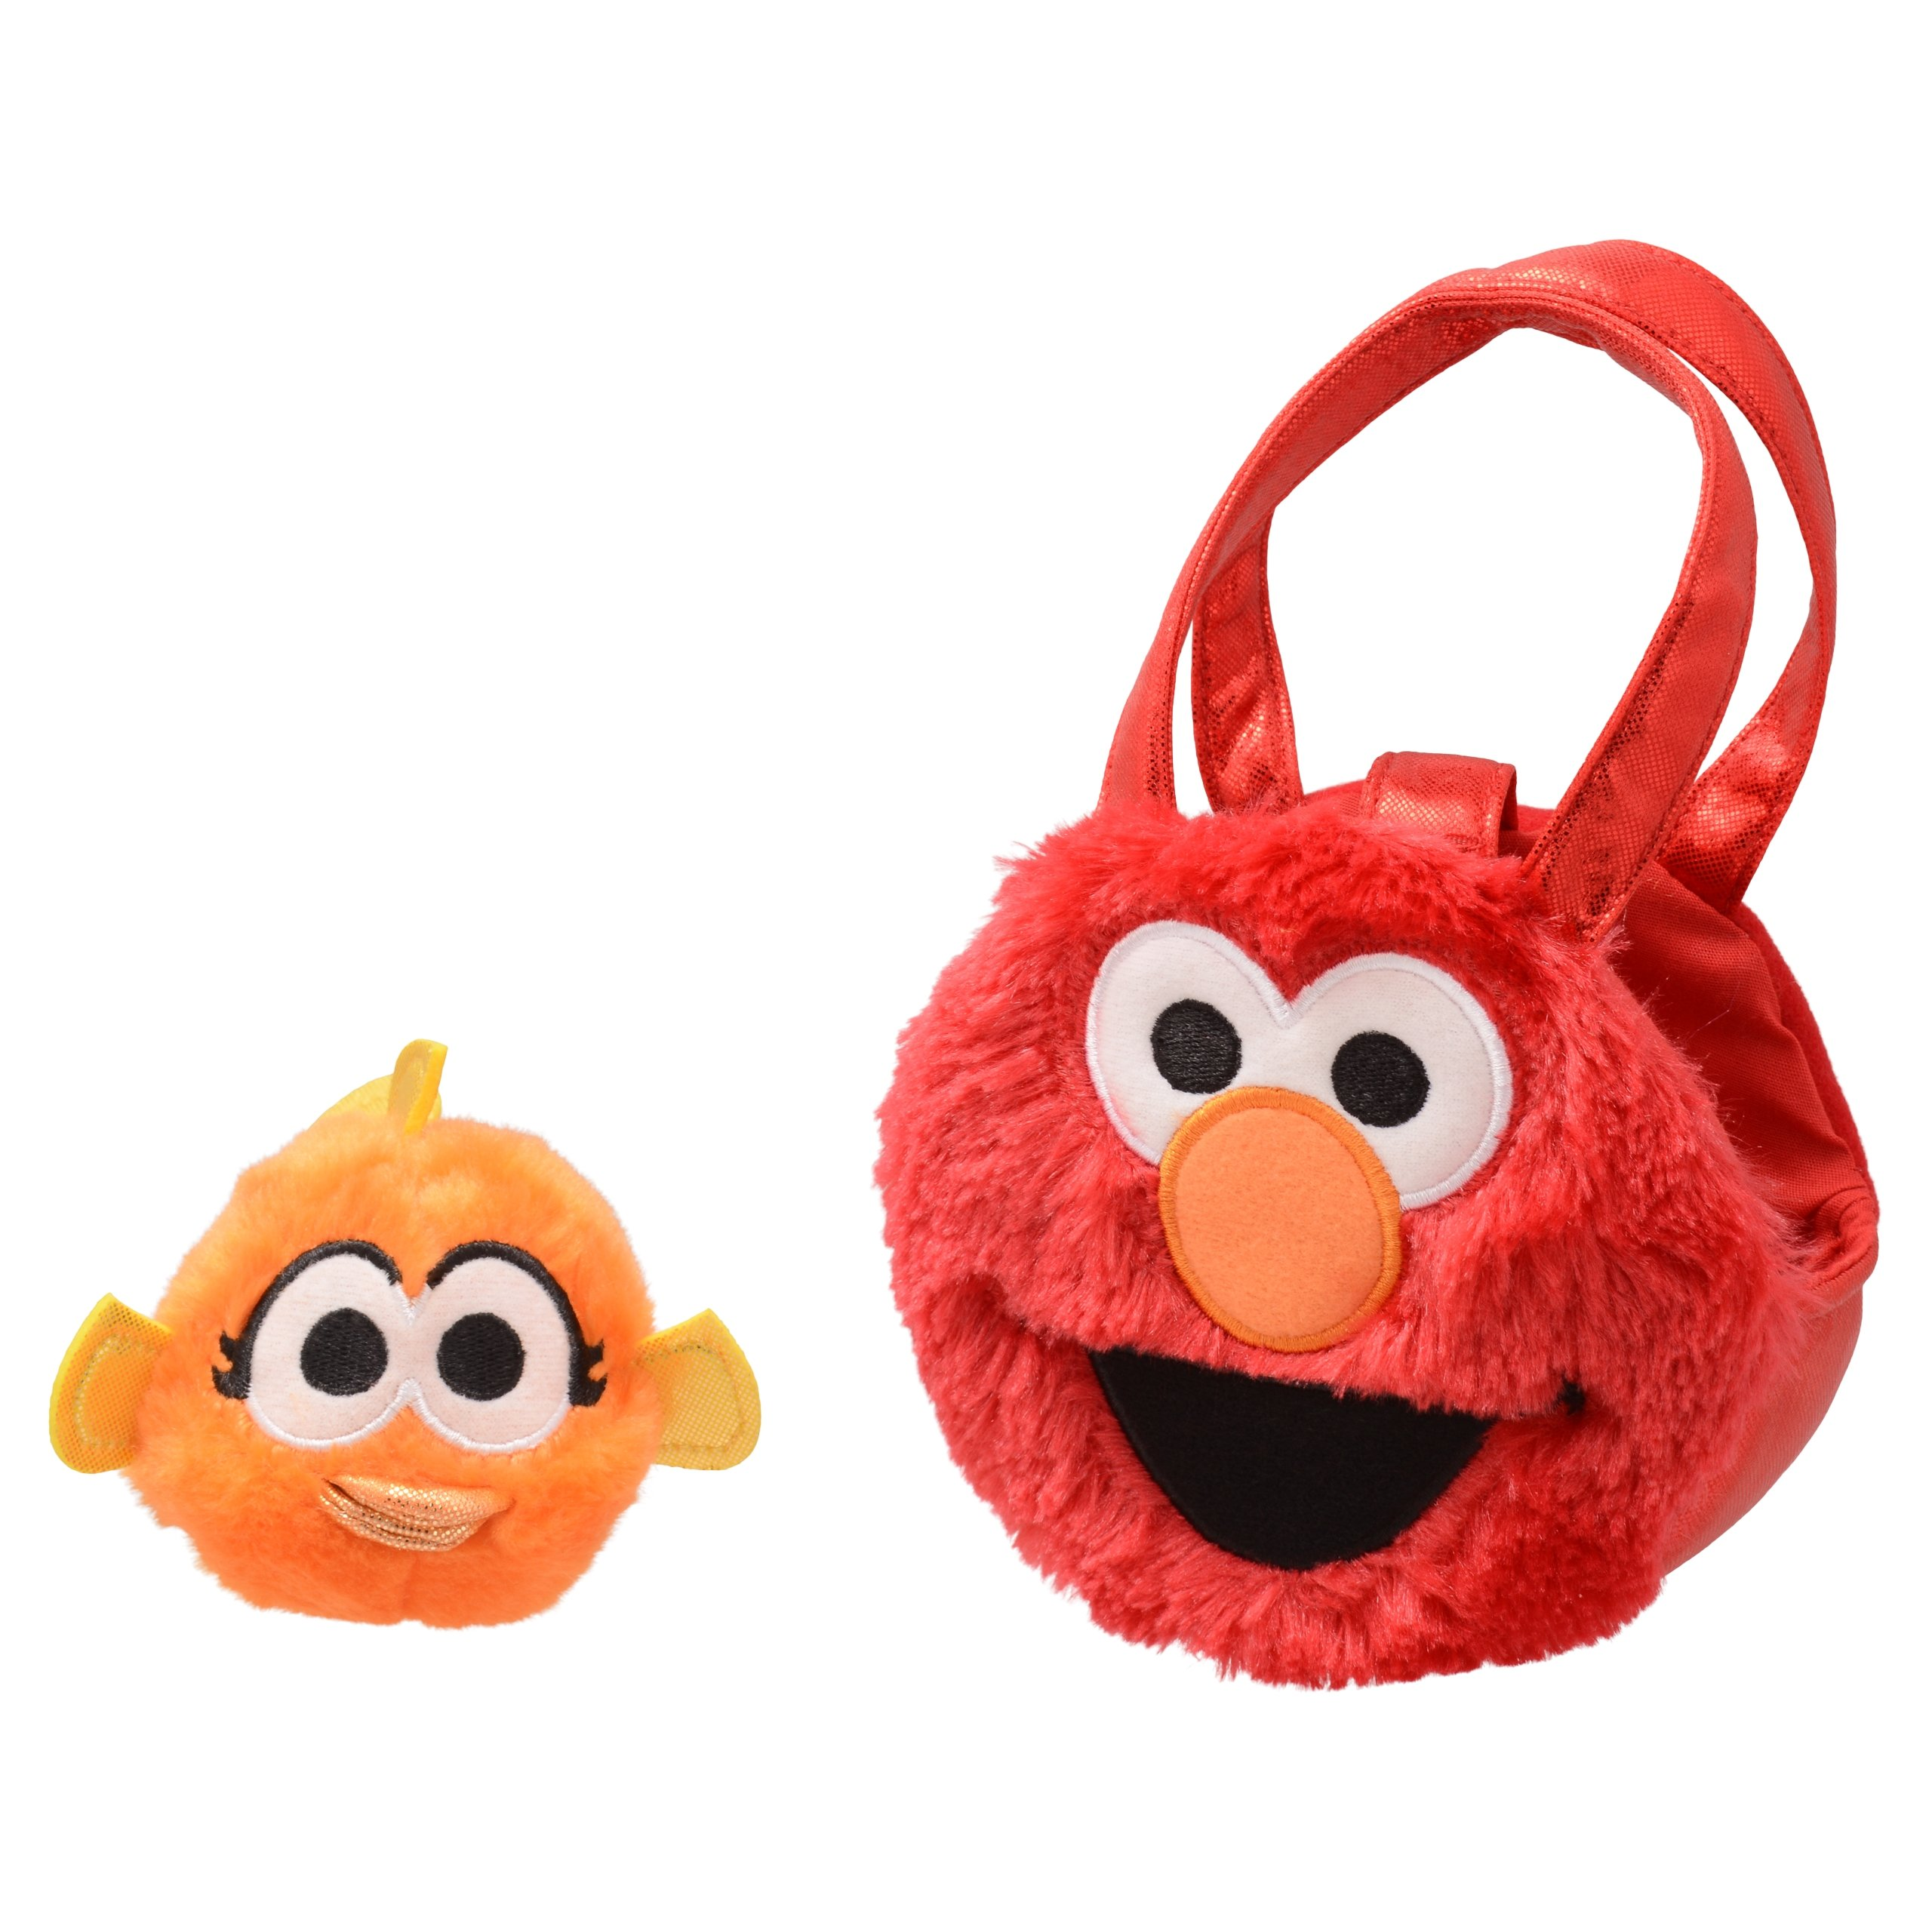 Elmo Dorothy Purse Carrier by Sesame Place (Image #2)